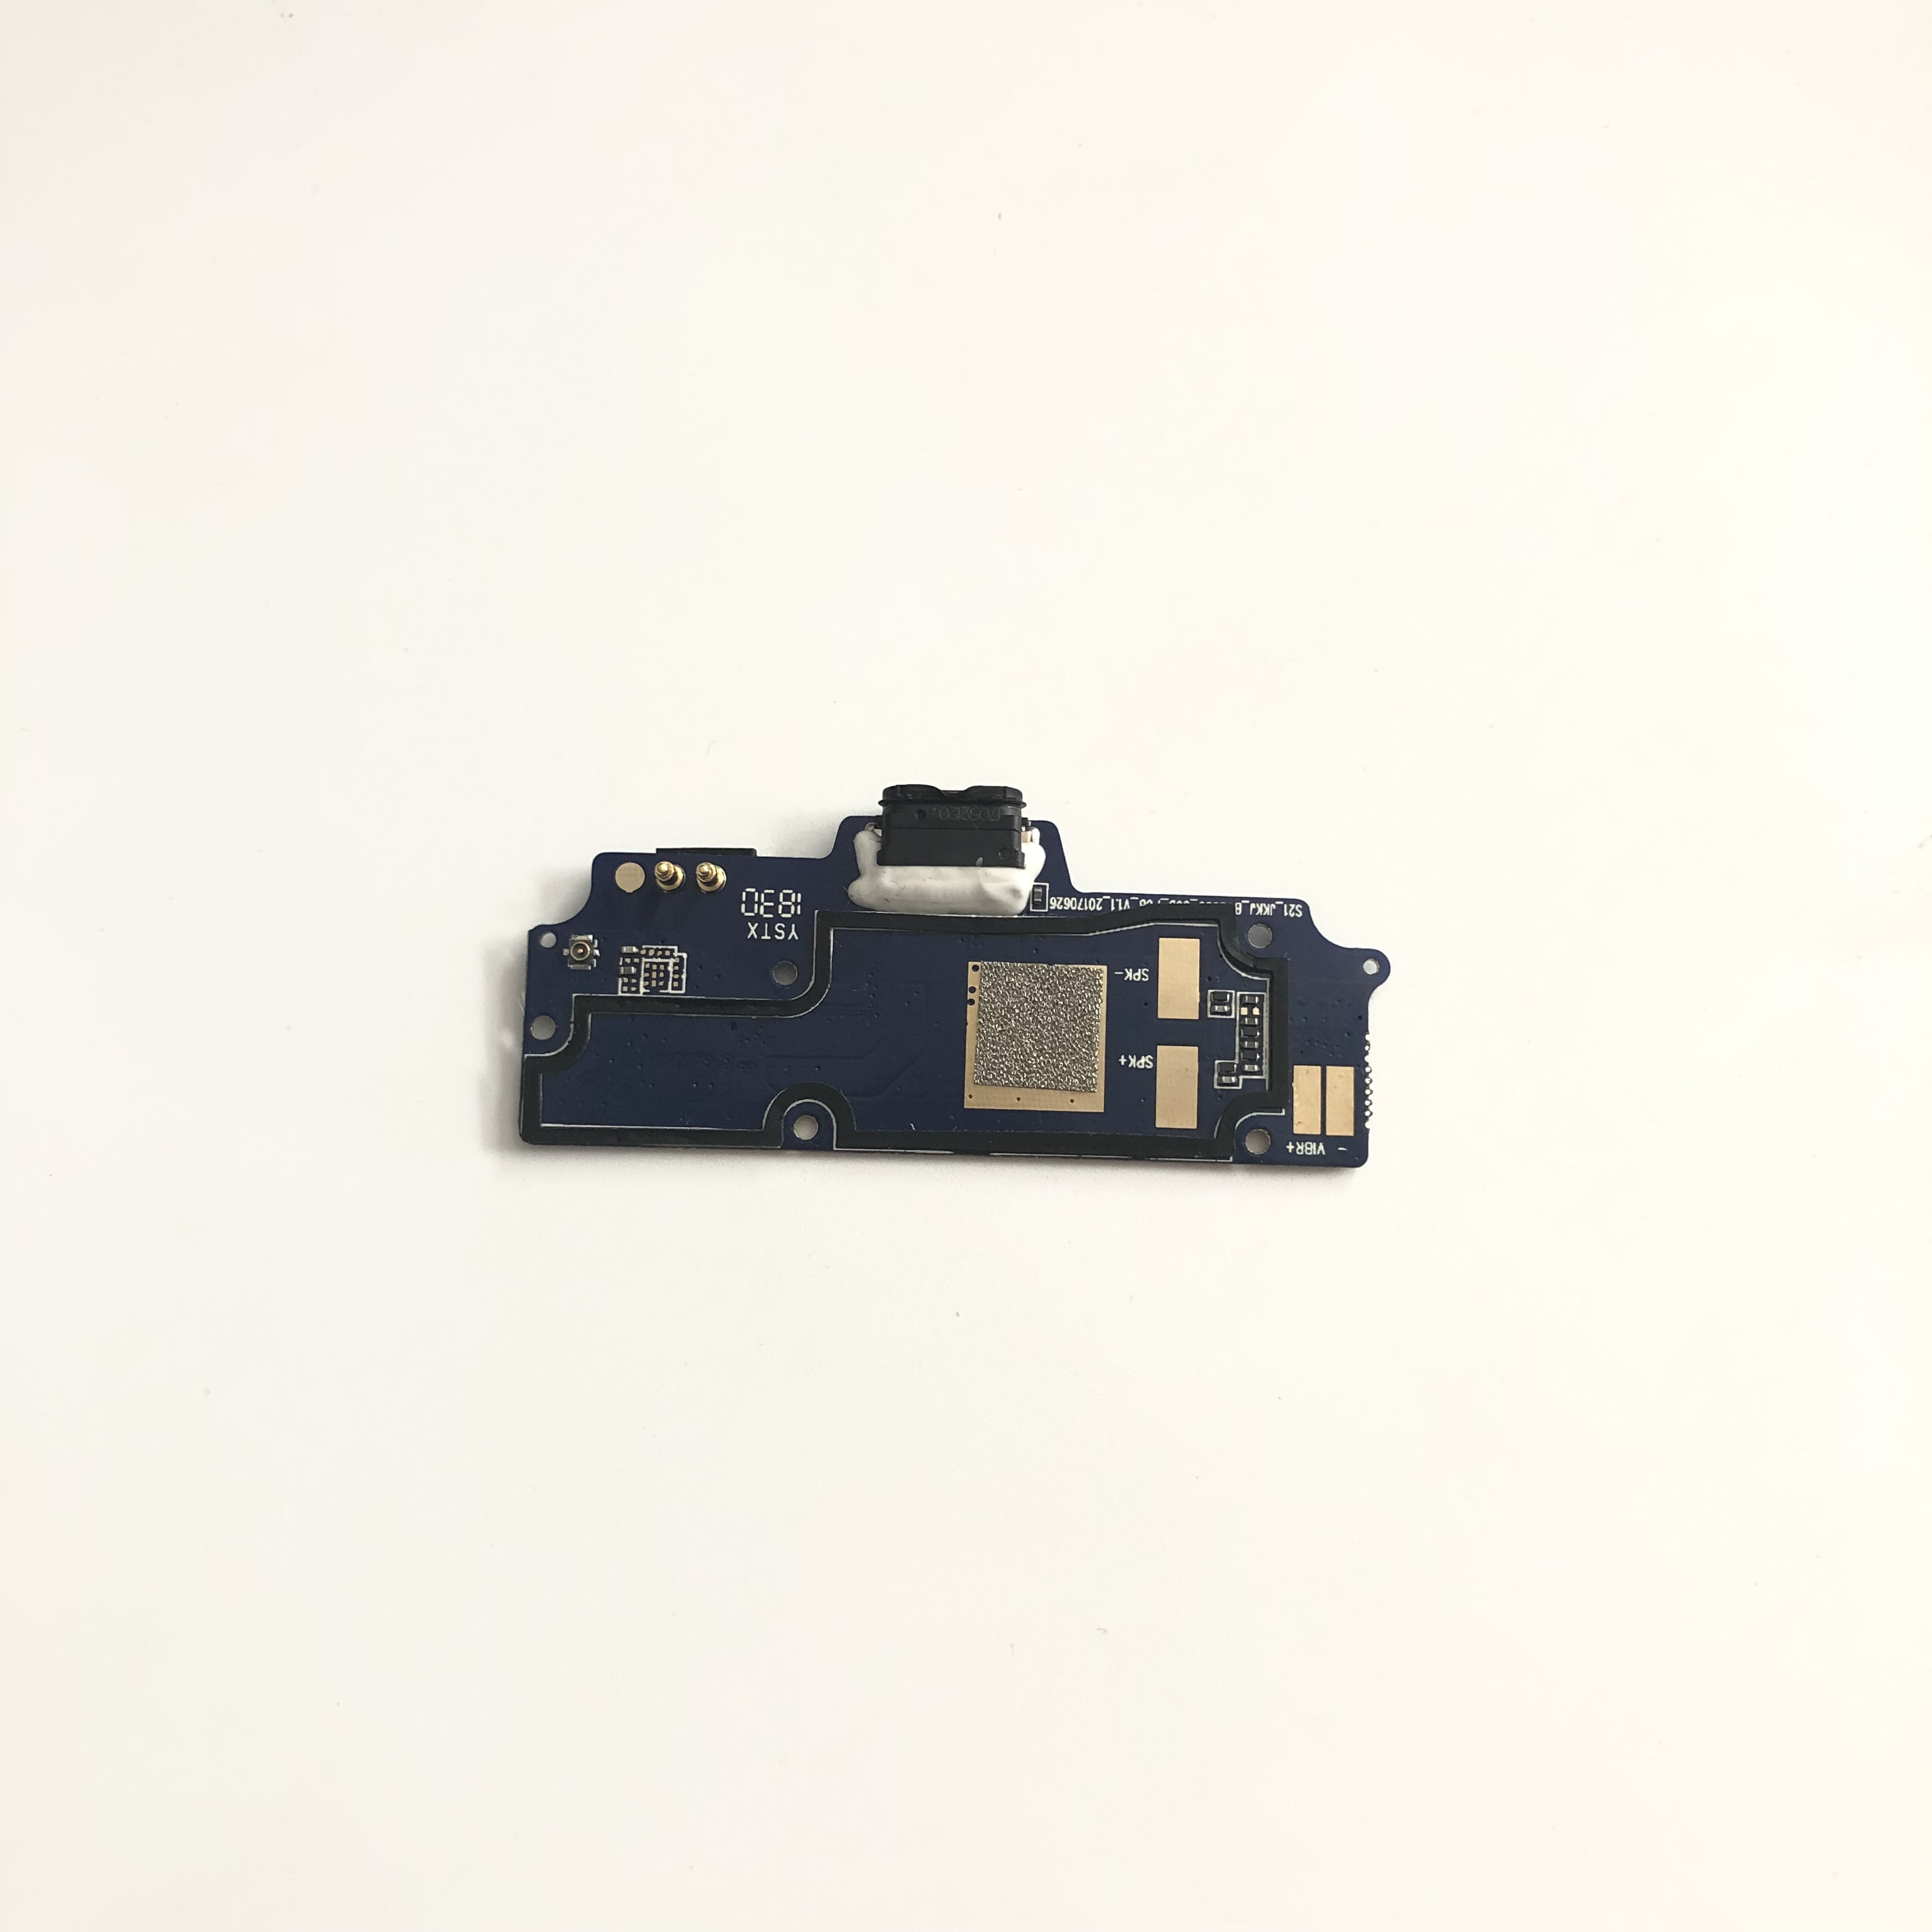 Blackview Charge-Board Bv8000 Pro MT6757 Usb-Plug for Mt6757/Octa-core/5.0inch/.. Used